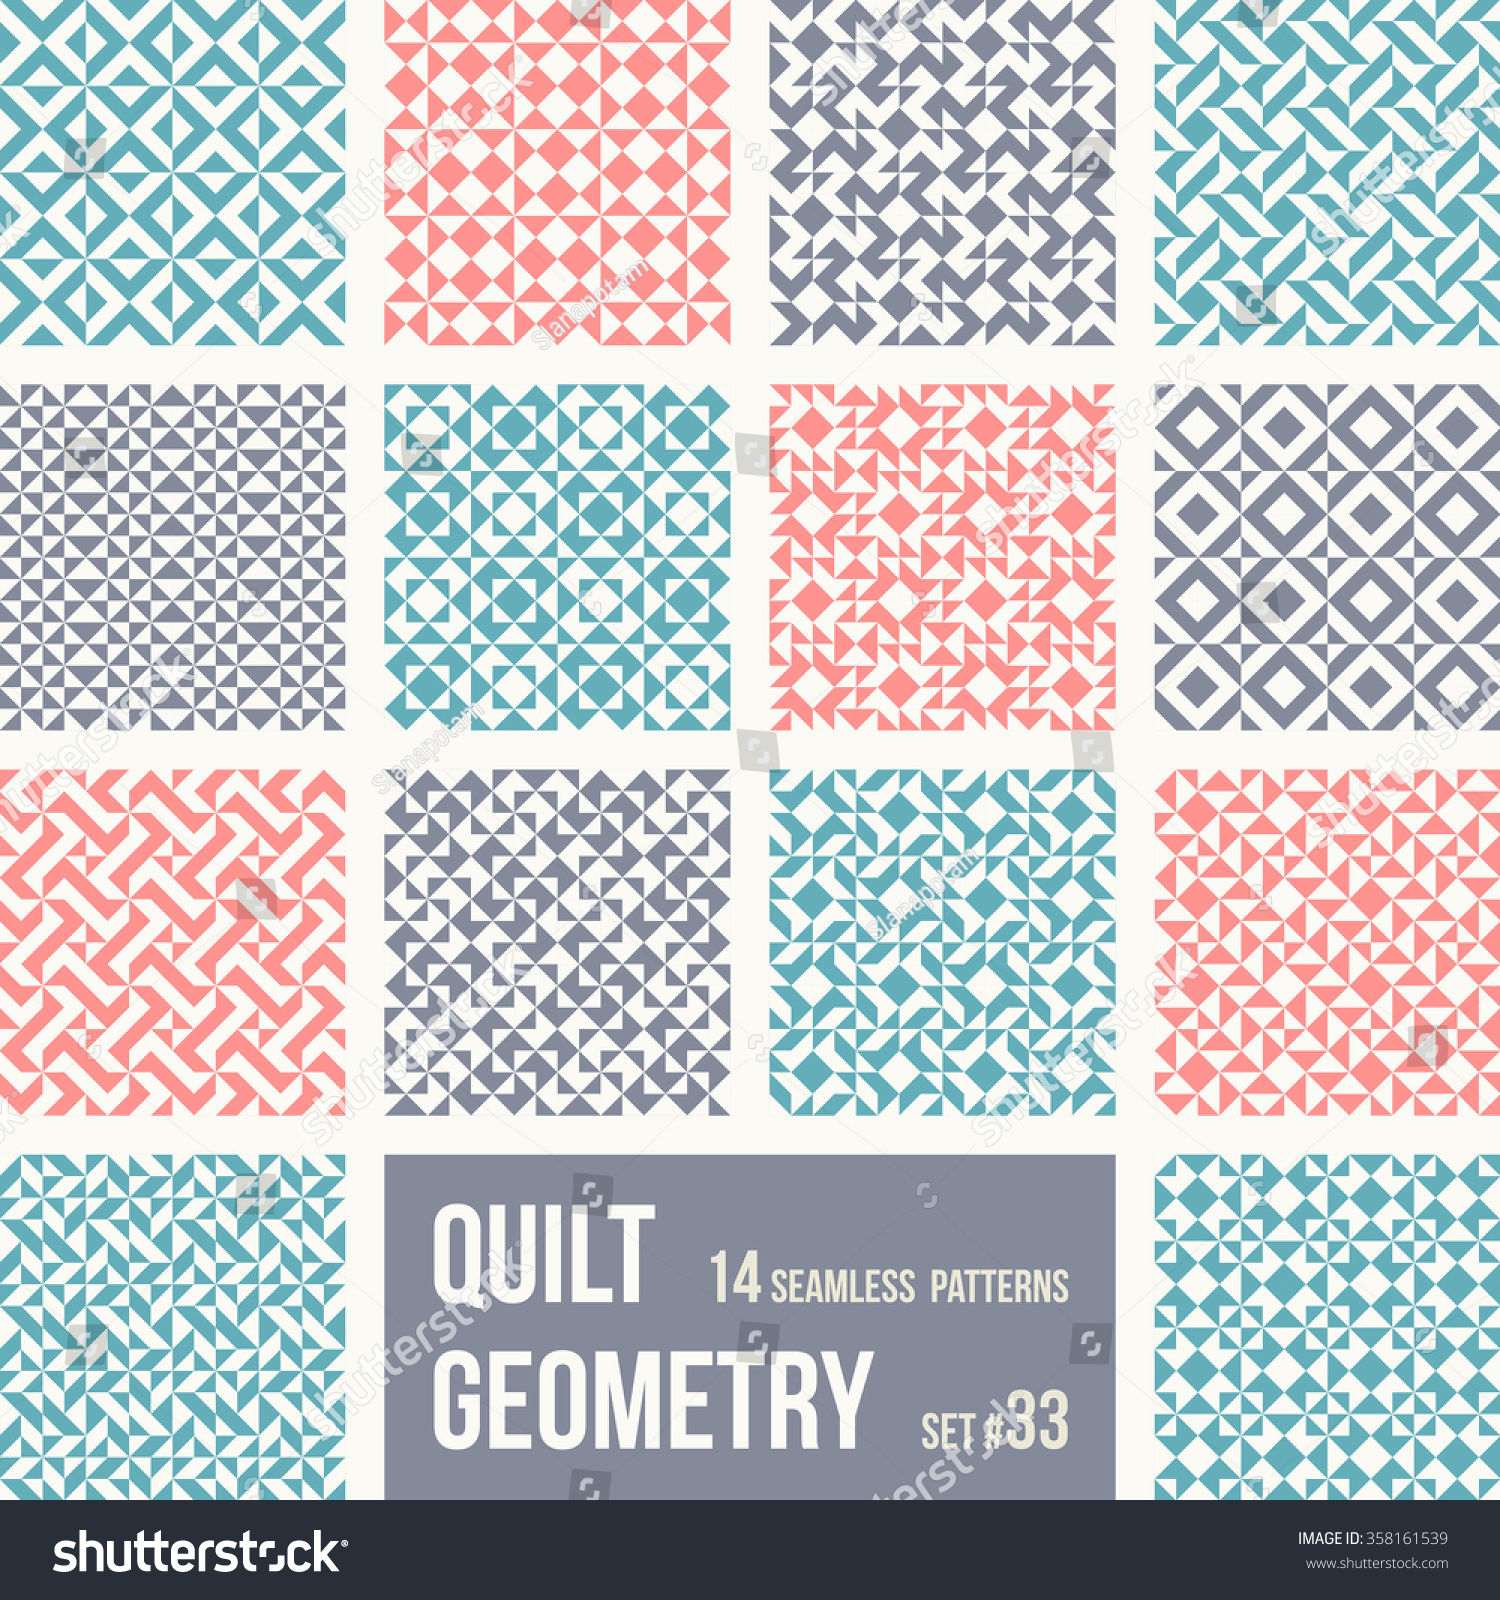 Easy Geometric Patterns Custom Inspiration Ideas